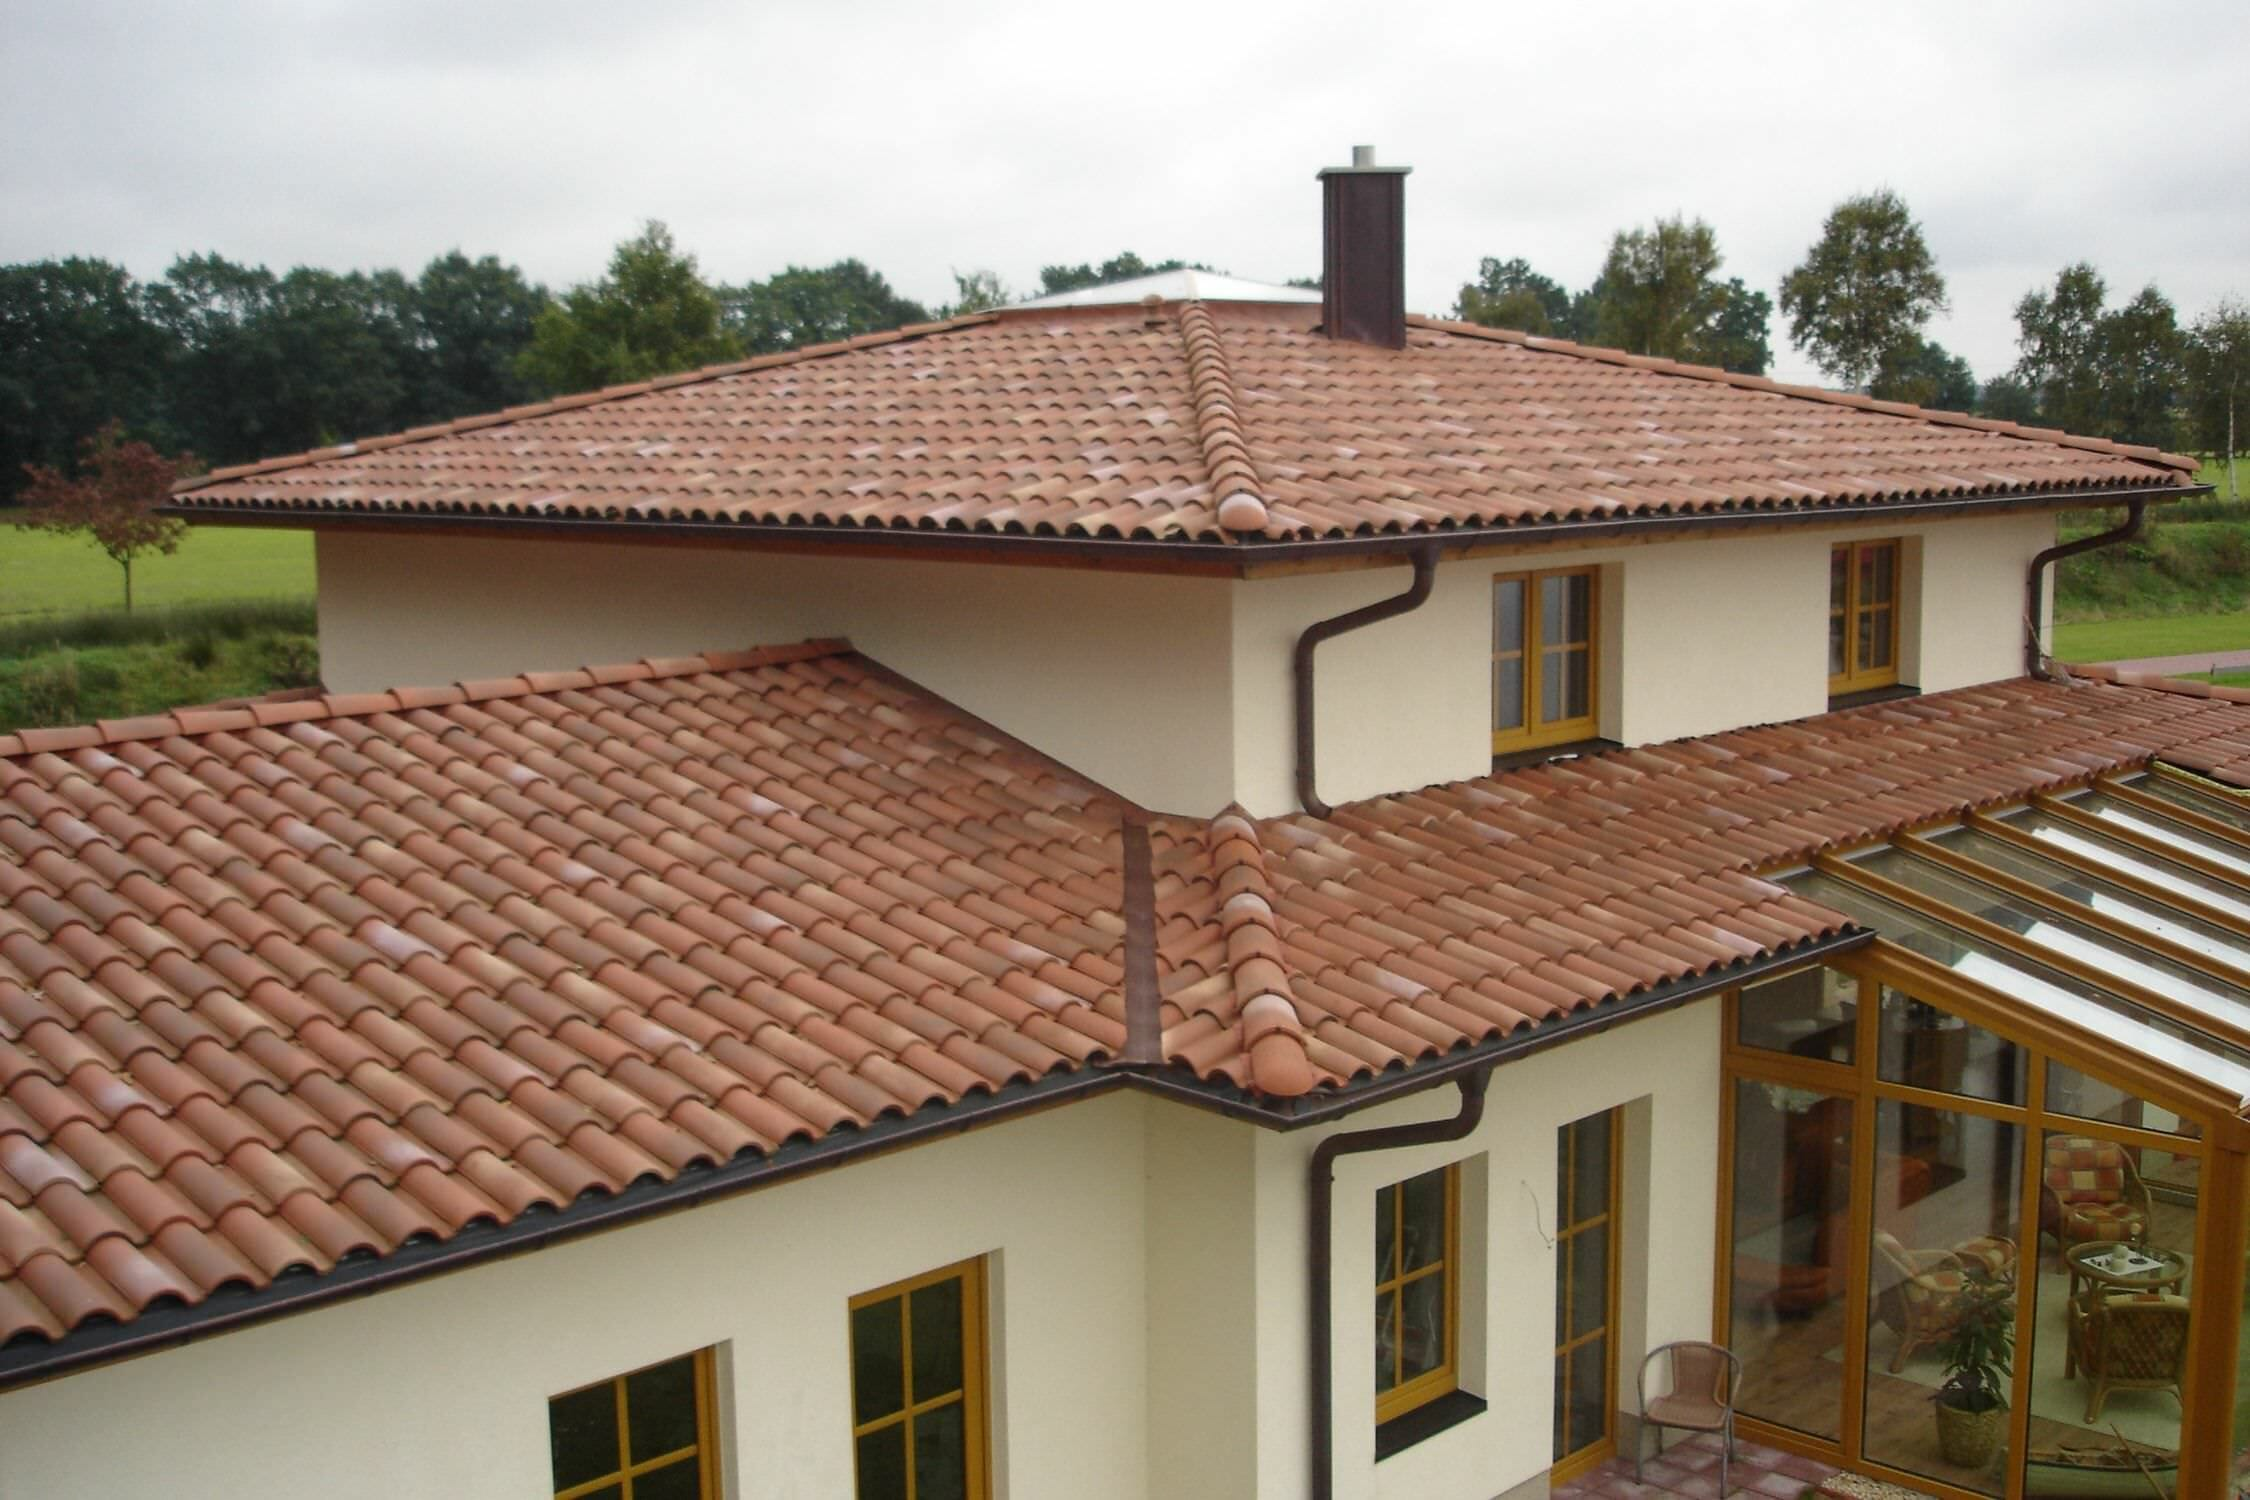 interlocking-roof-tile-roman-clay-2785-1576629